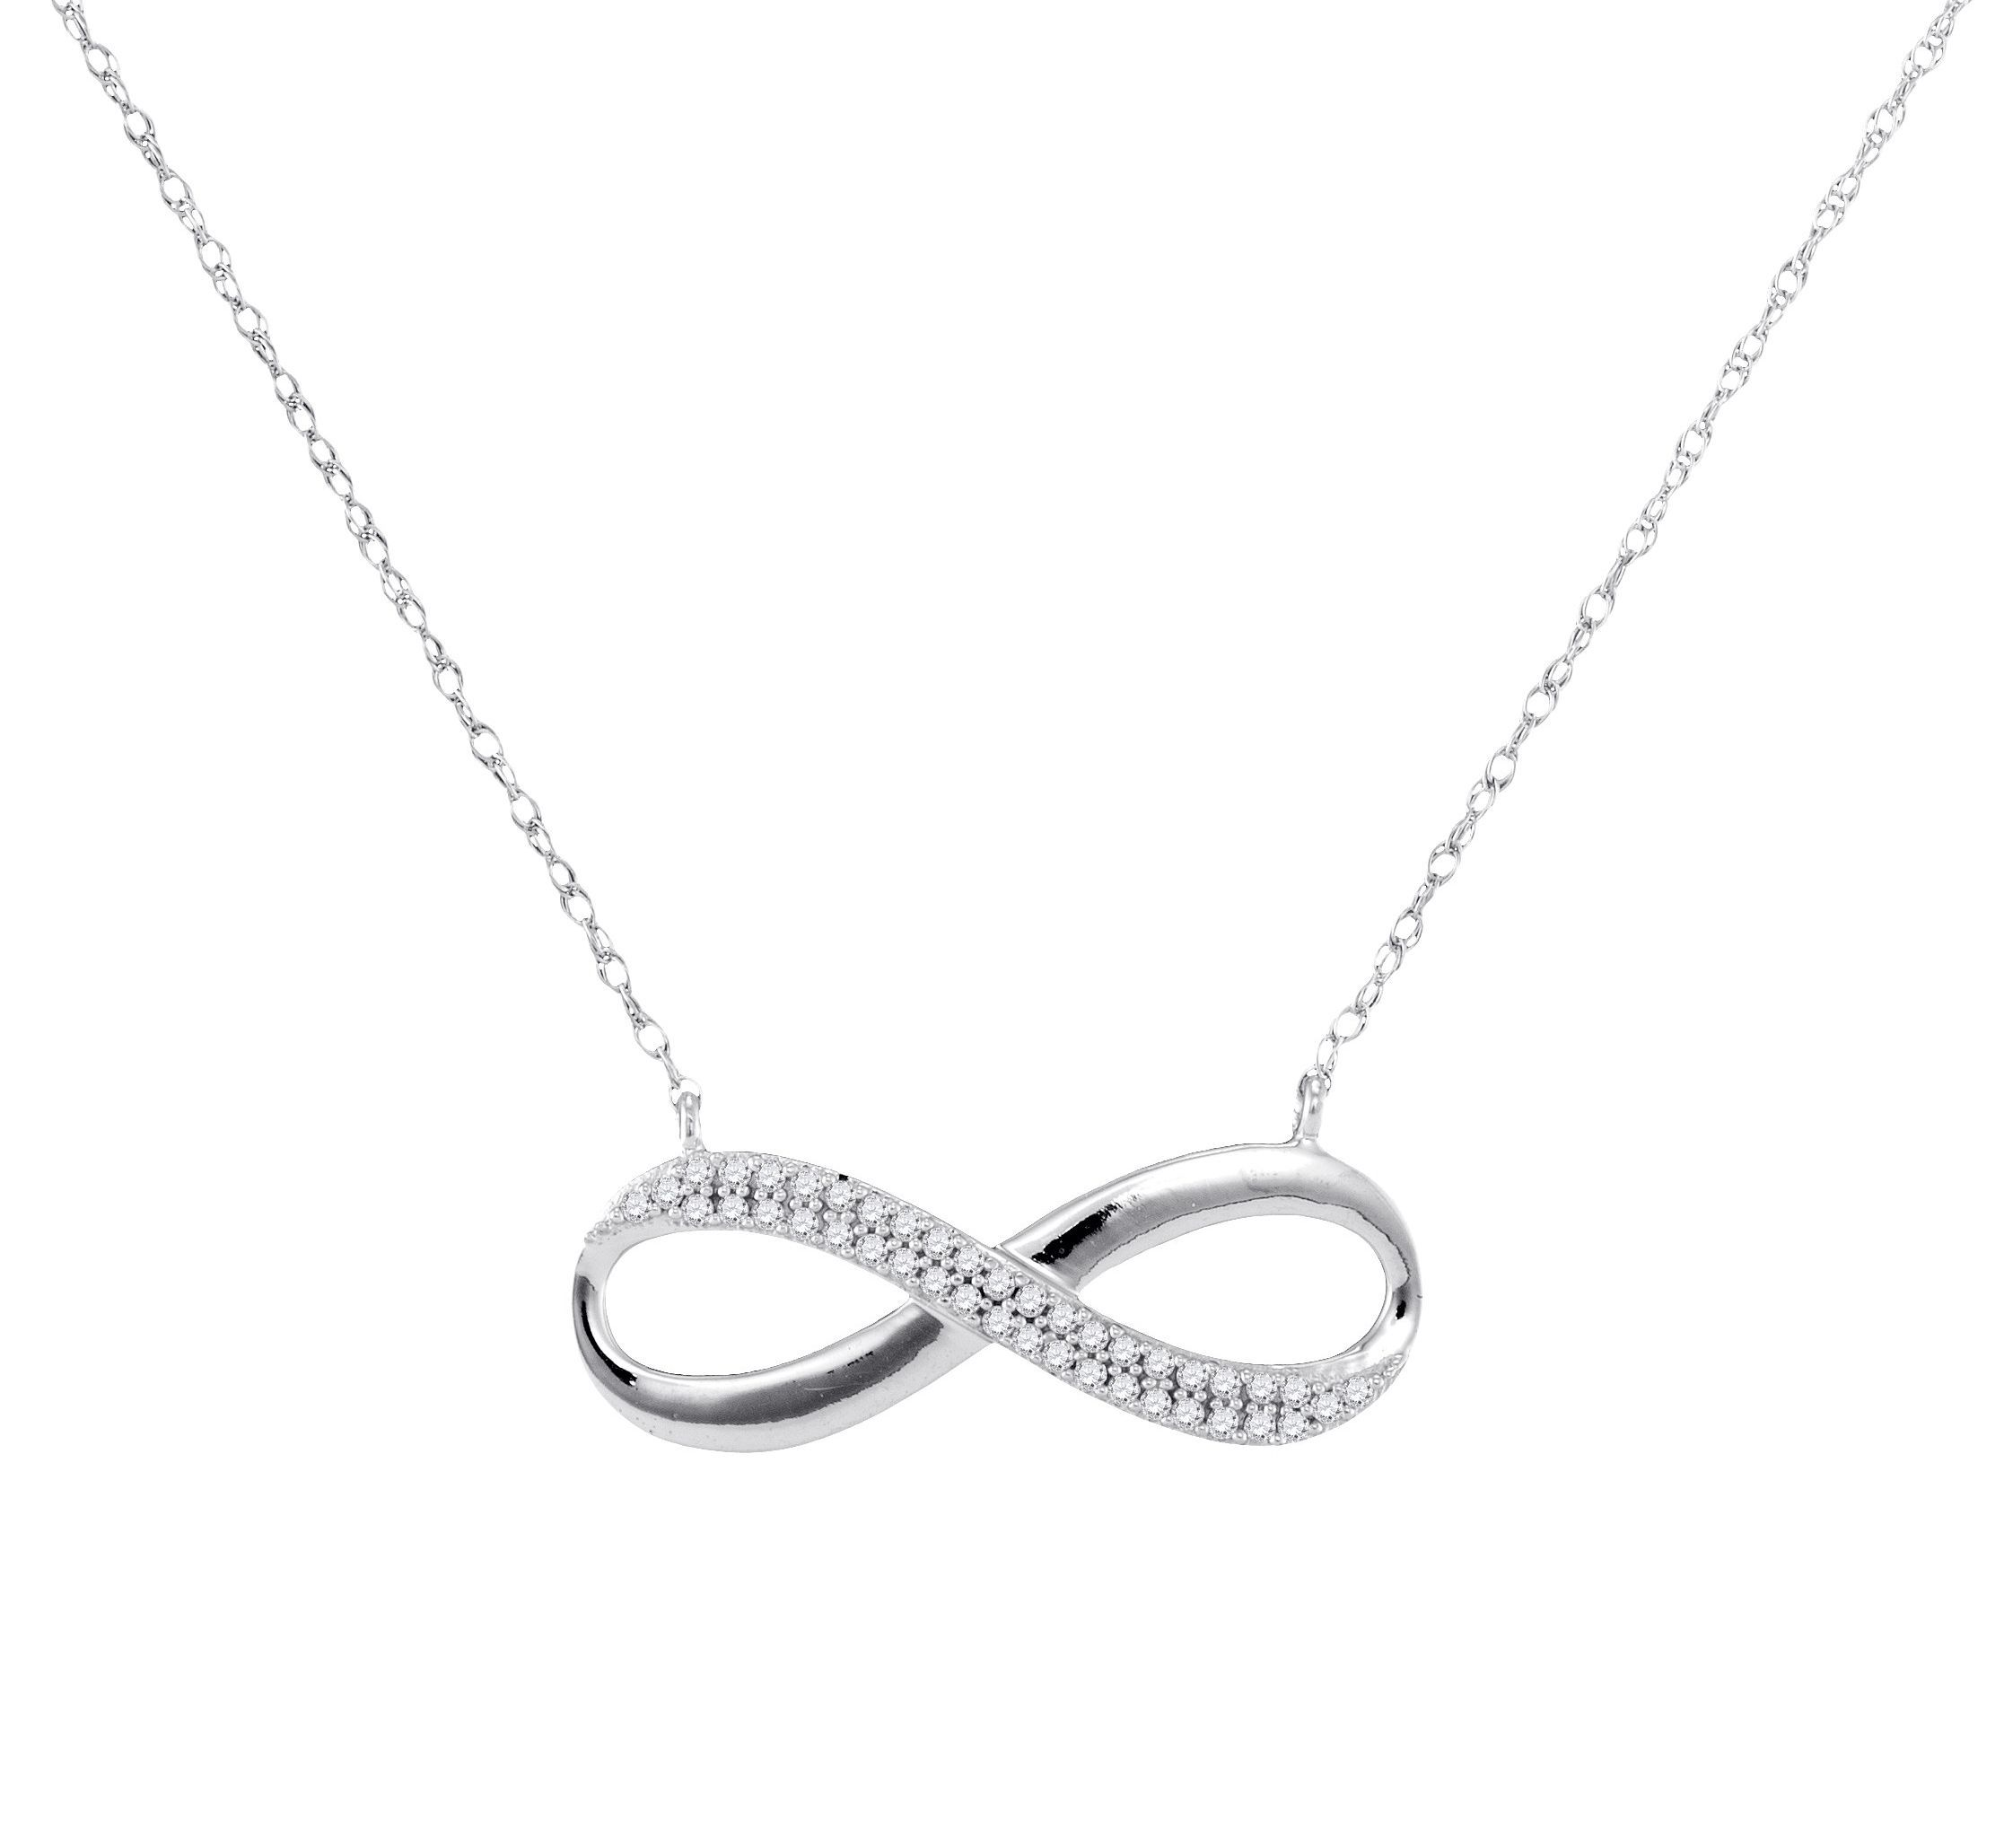 set t infinity s sterling round in silver gold necklace ct pendant bezel pin cz girl cut w